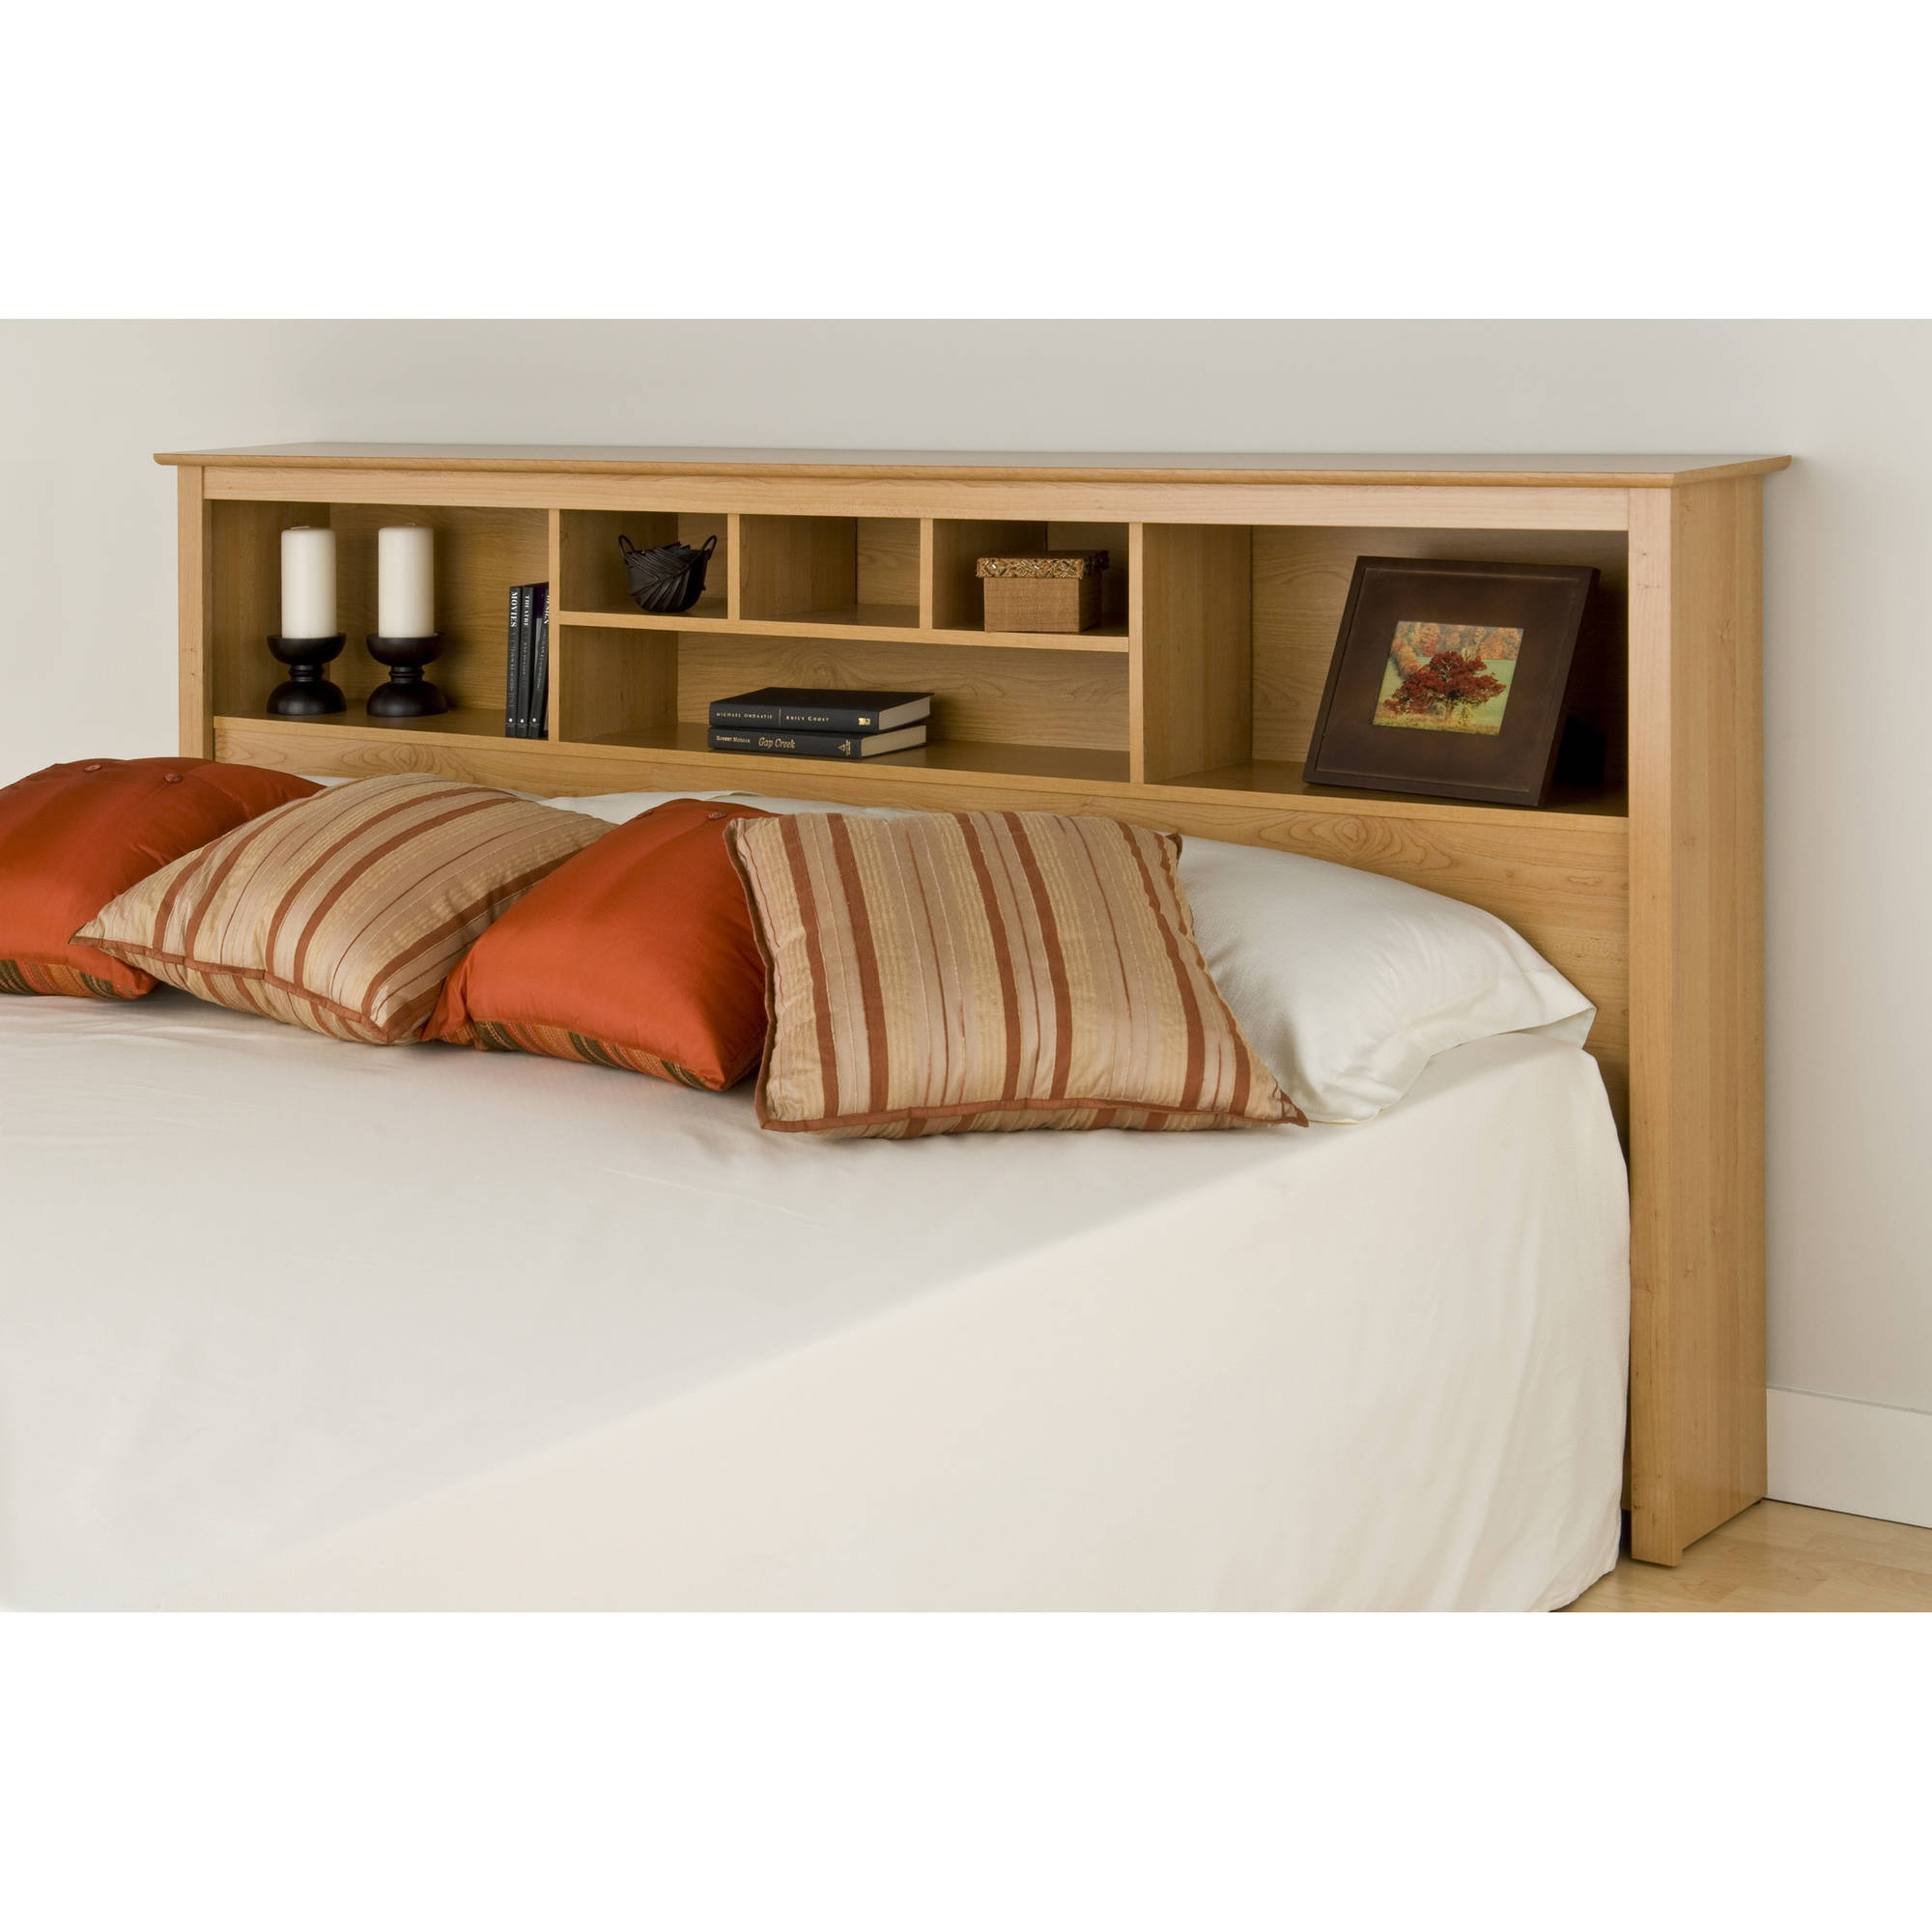 Prepac Sonoma King Storage Headboard Multiple Colors